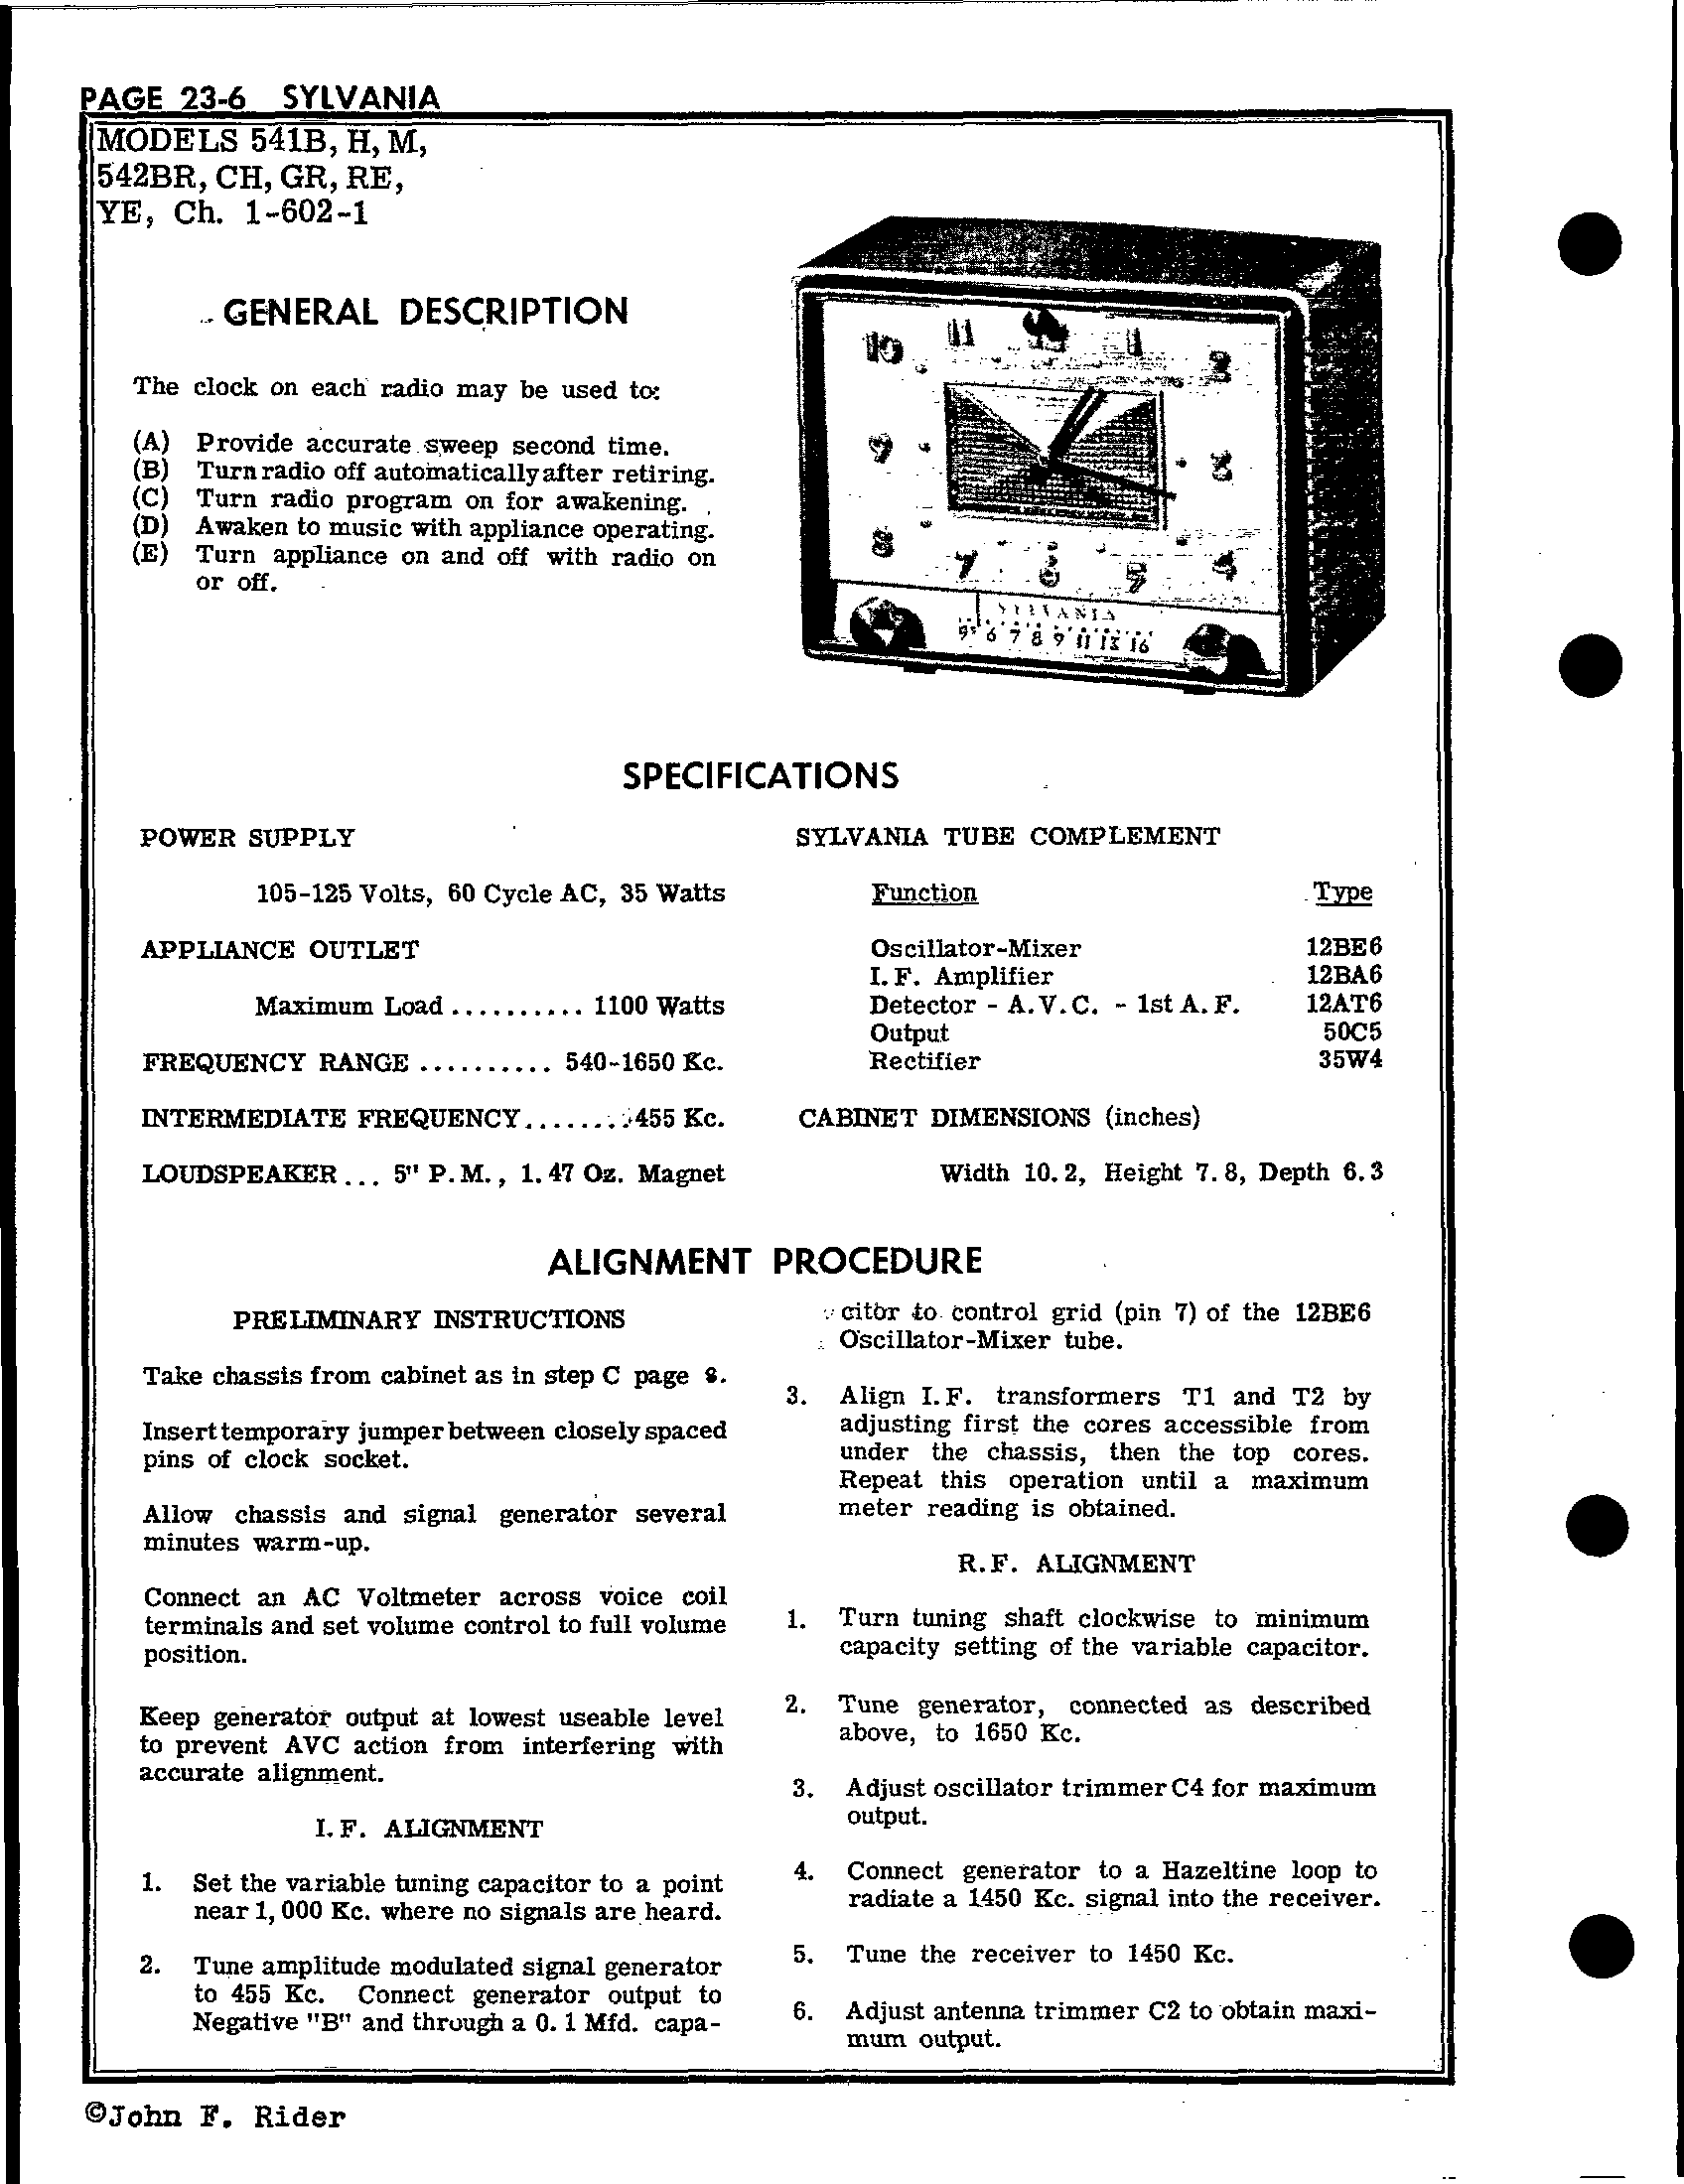 Sylvania Electric Products 542re Antique Electronic Supply. Schematic Pages. Wiring. Sylvania Tube Radio Schematics At Scoala.co